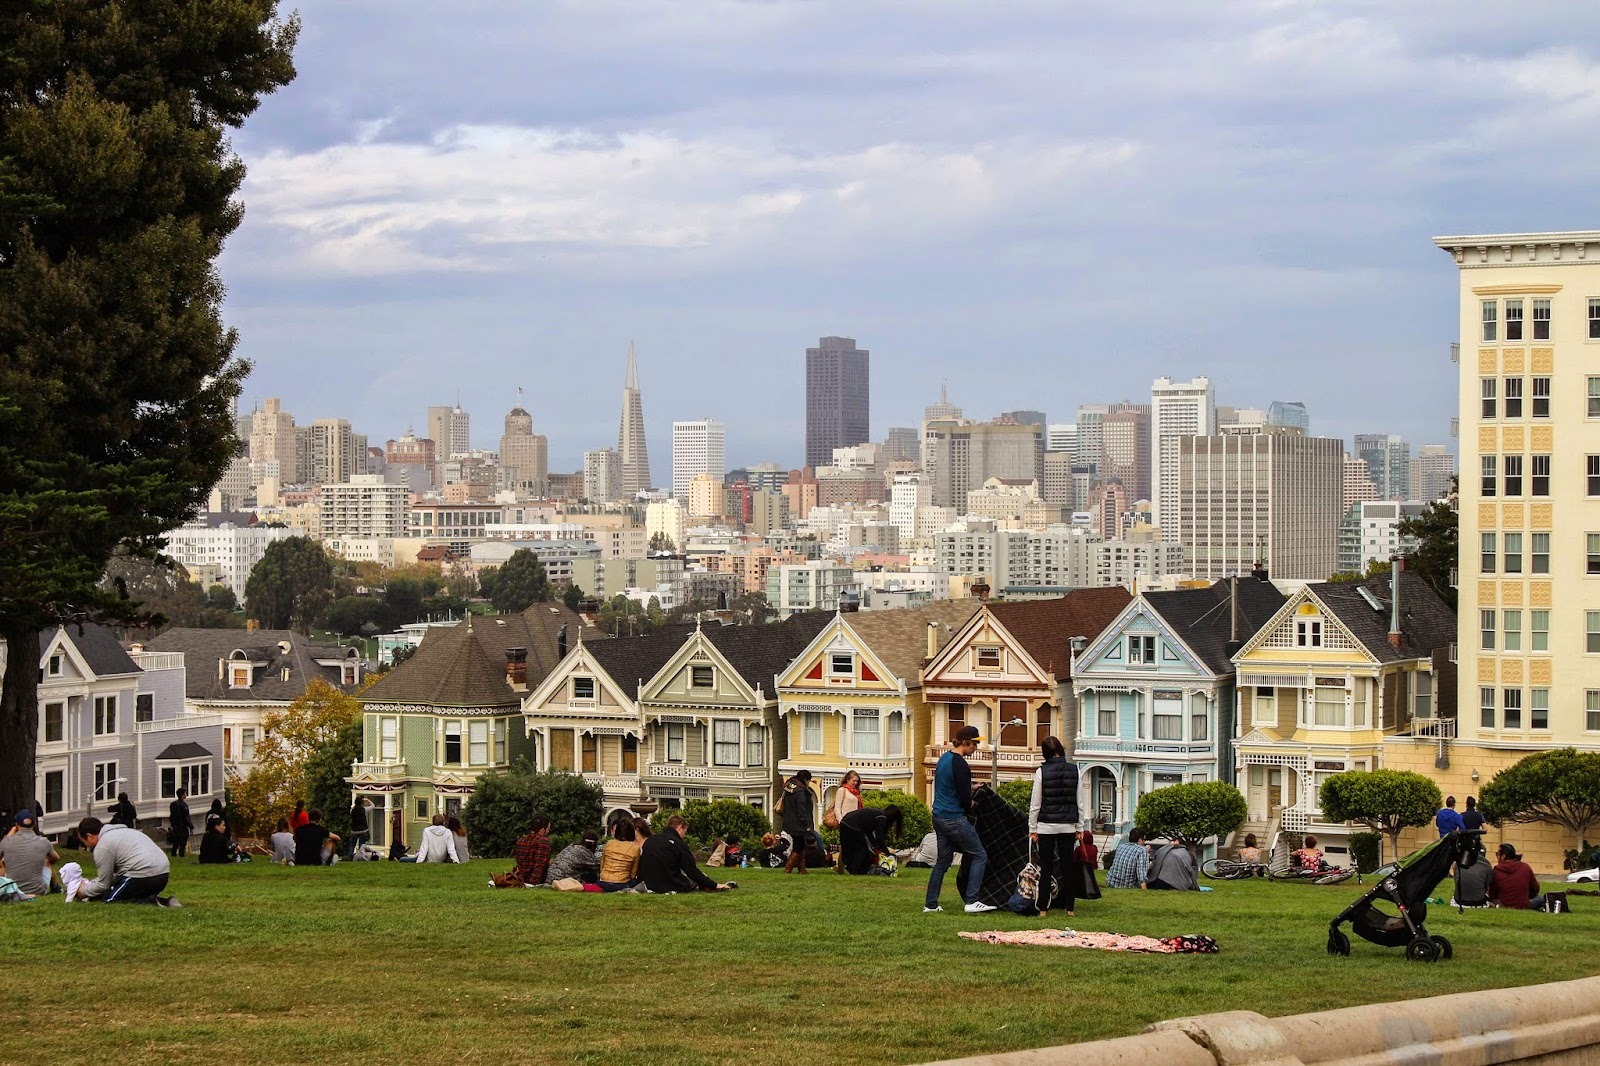 Painted ladies at Alamo Square